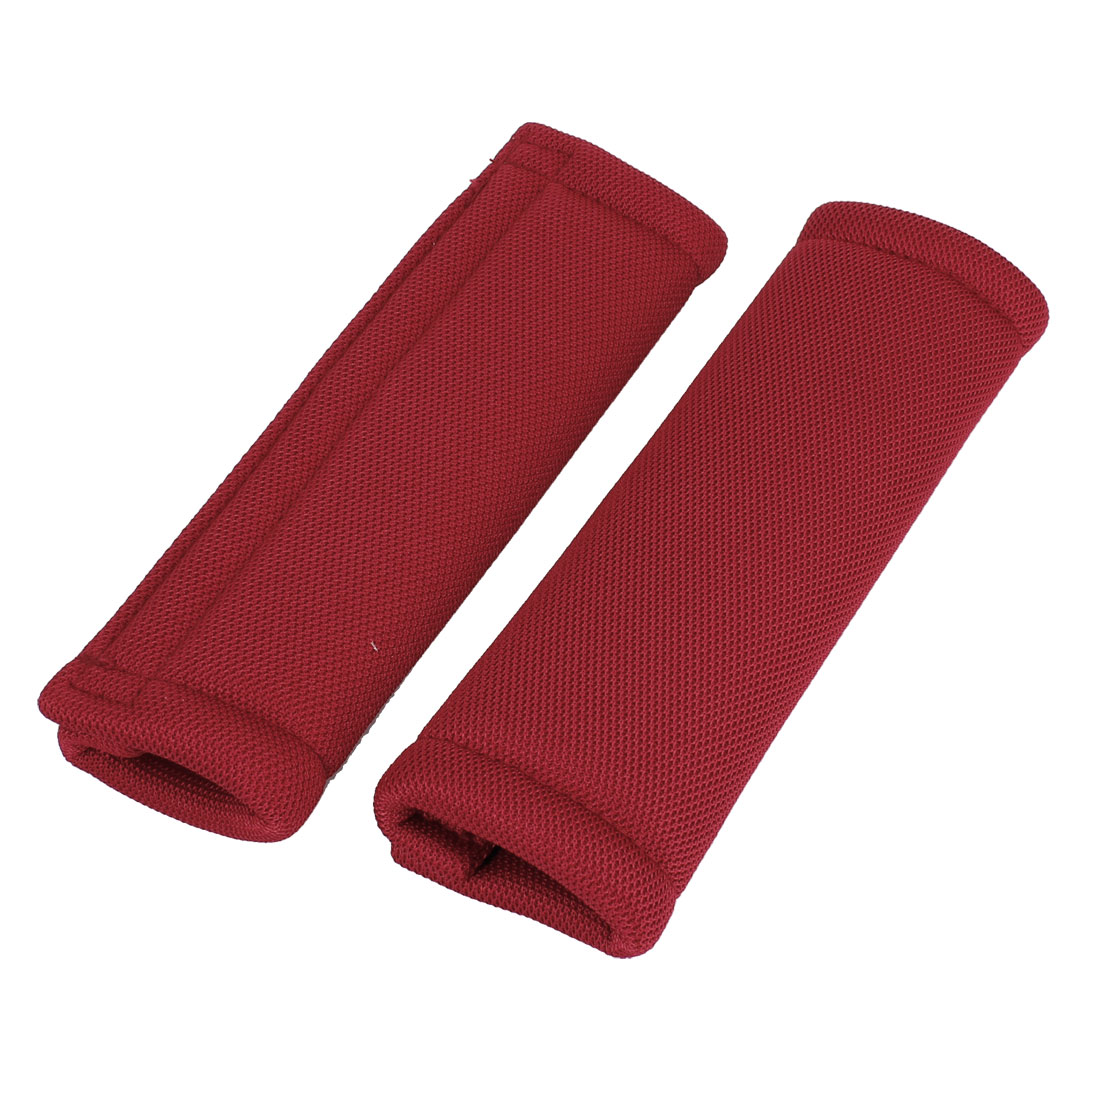 2 Pcs Vehicle Safety Seat Belt Seatbelt Protector Cover Shoulder Pad Red 21cm Long